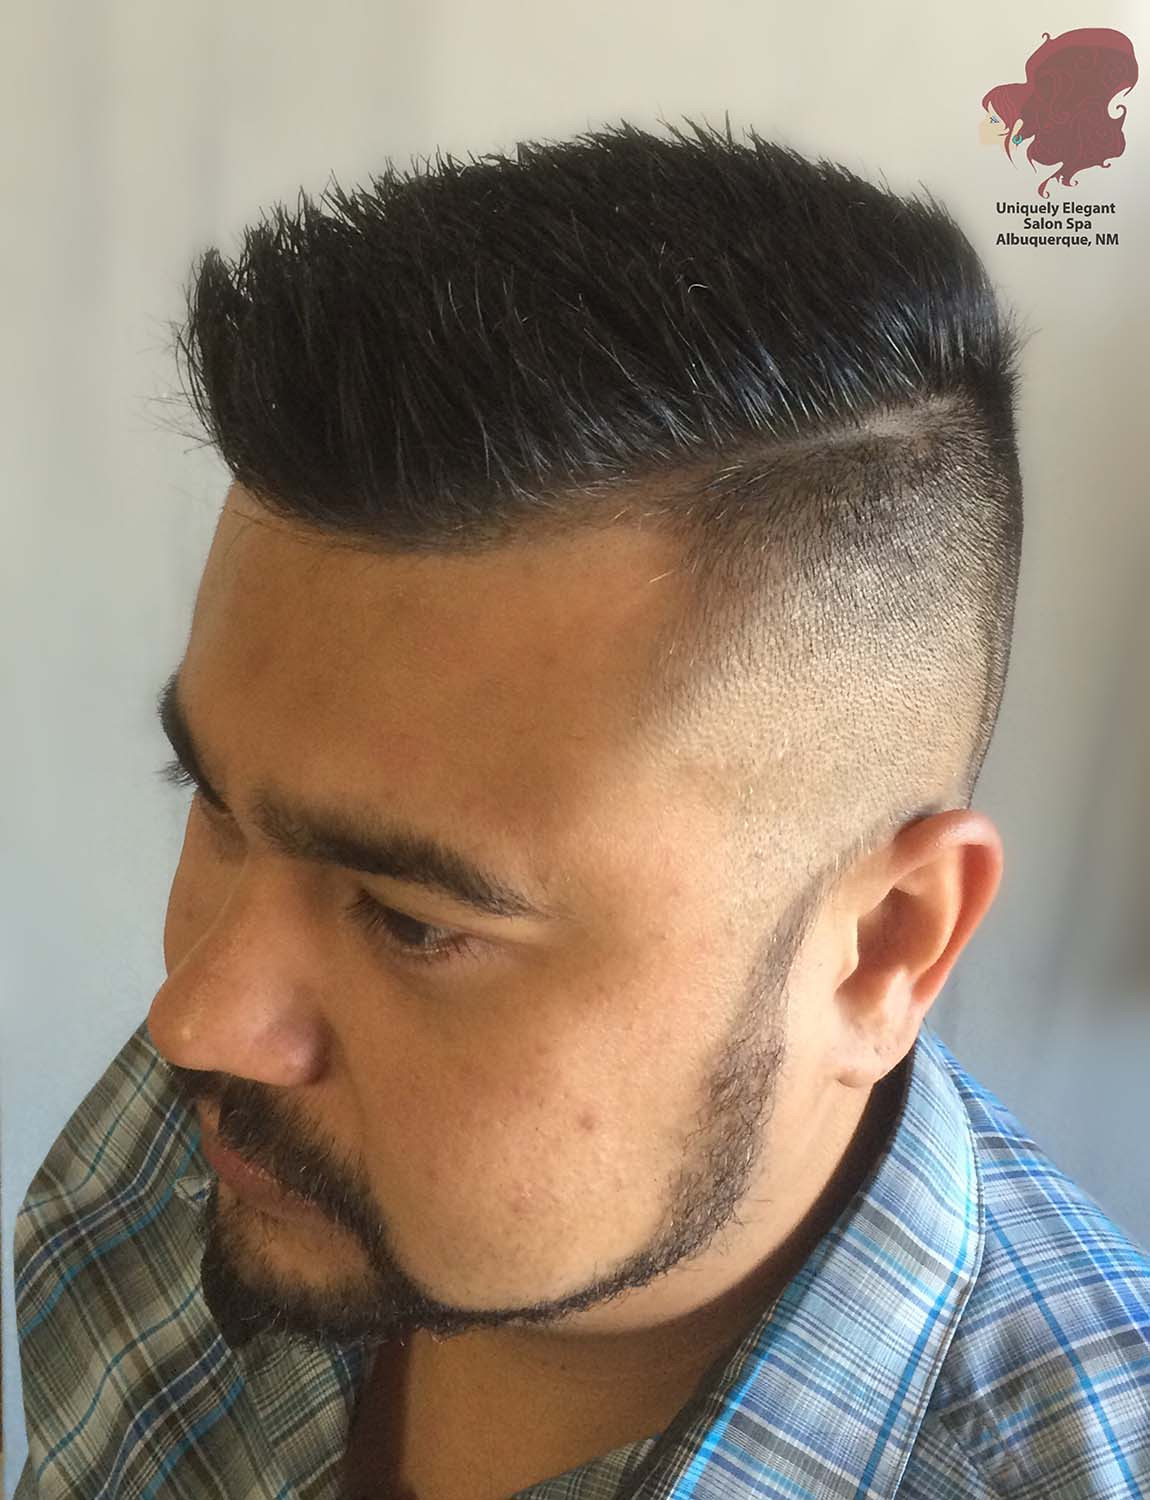 Mens Haircuts Albuquerque  Many images and pics of all types of haircuts and